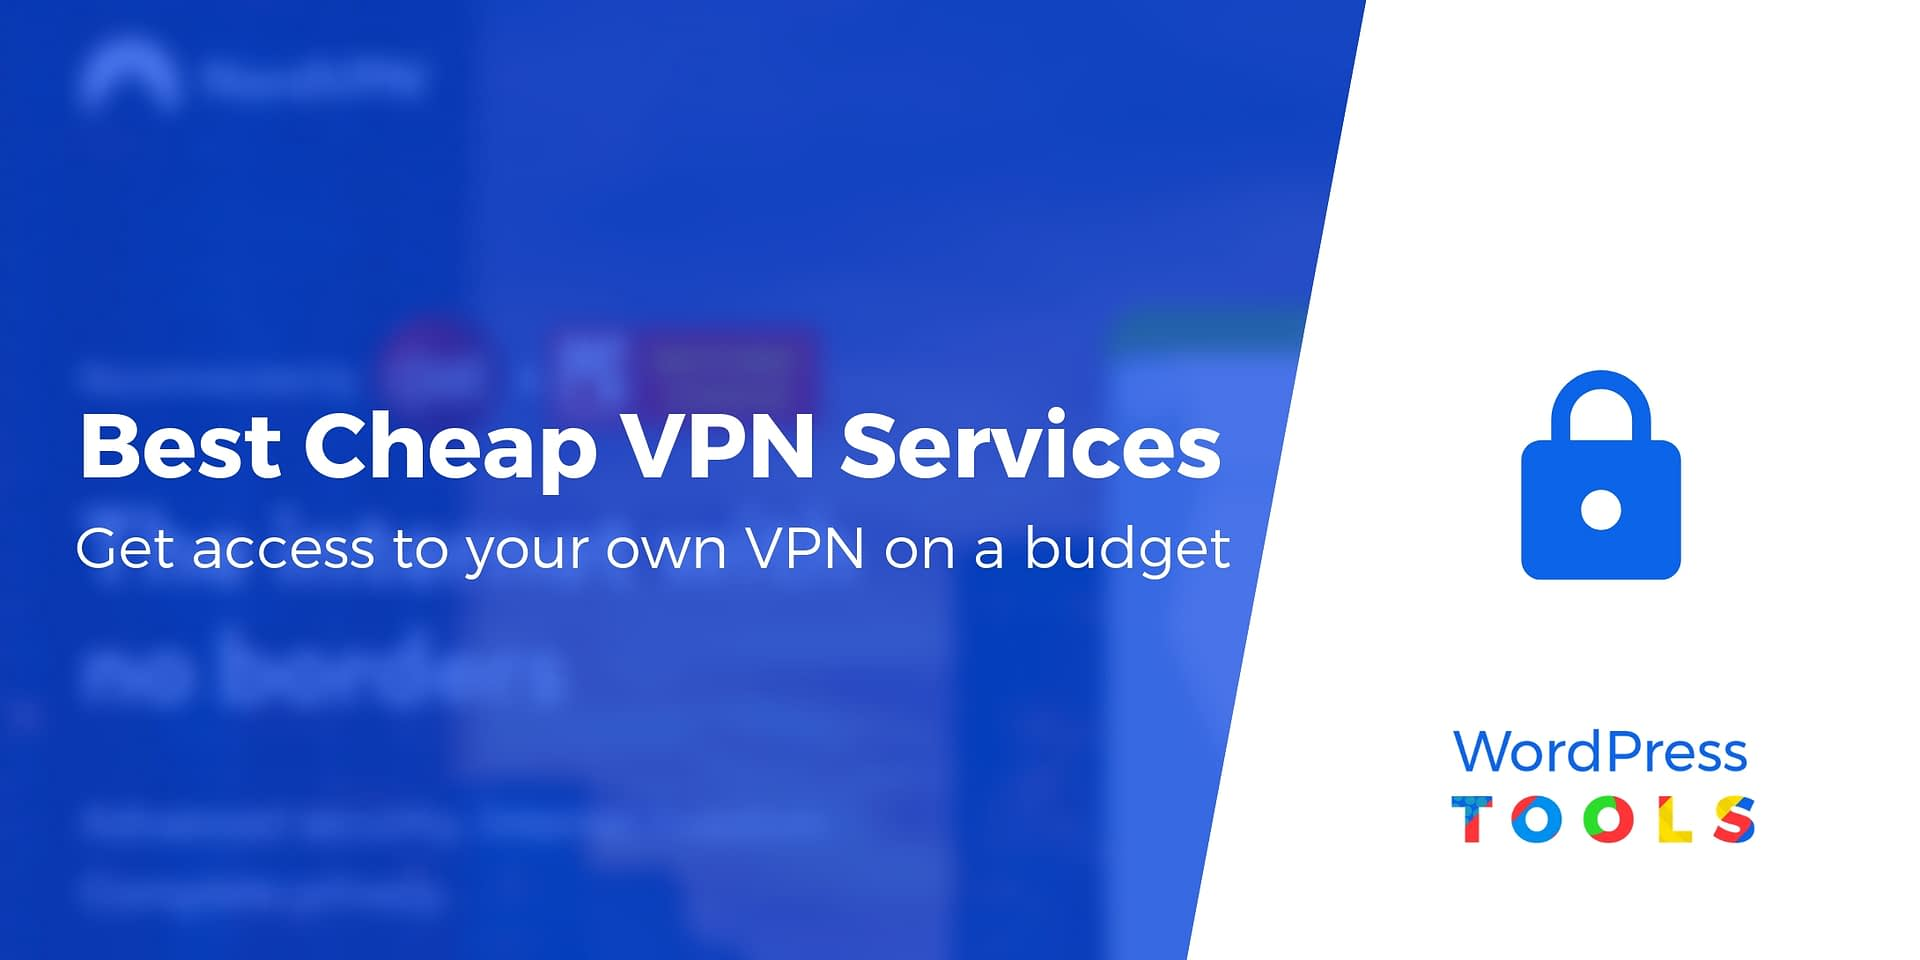 5 Best Cheap VPN Services in 2019: Privacy on a Budget